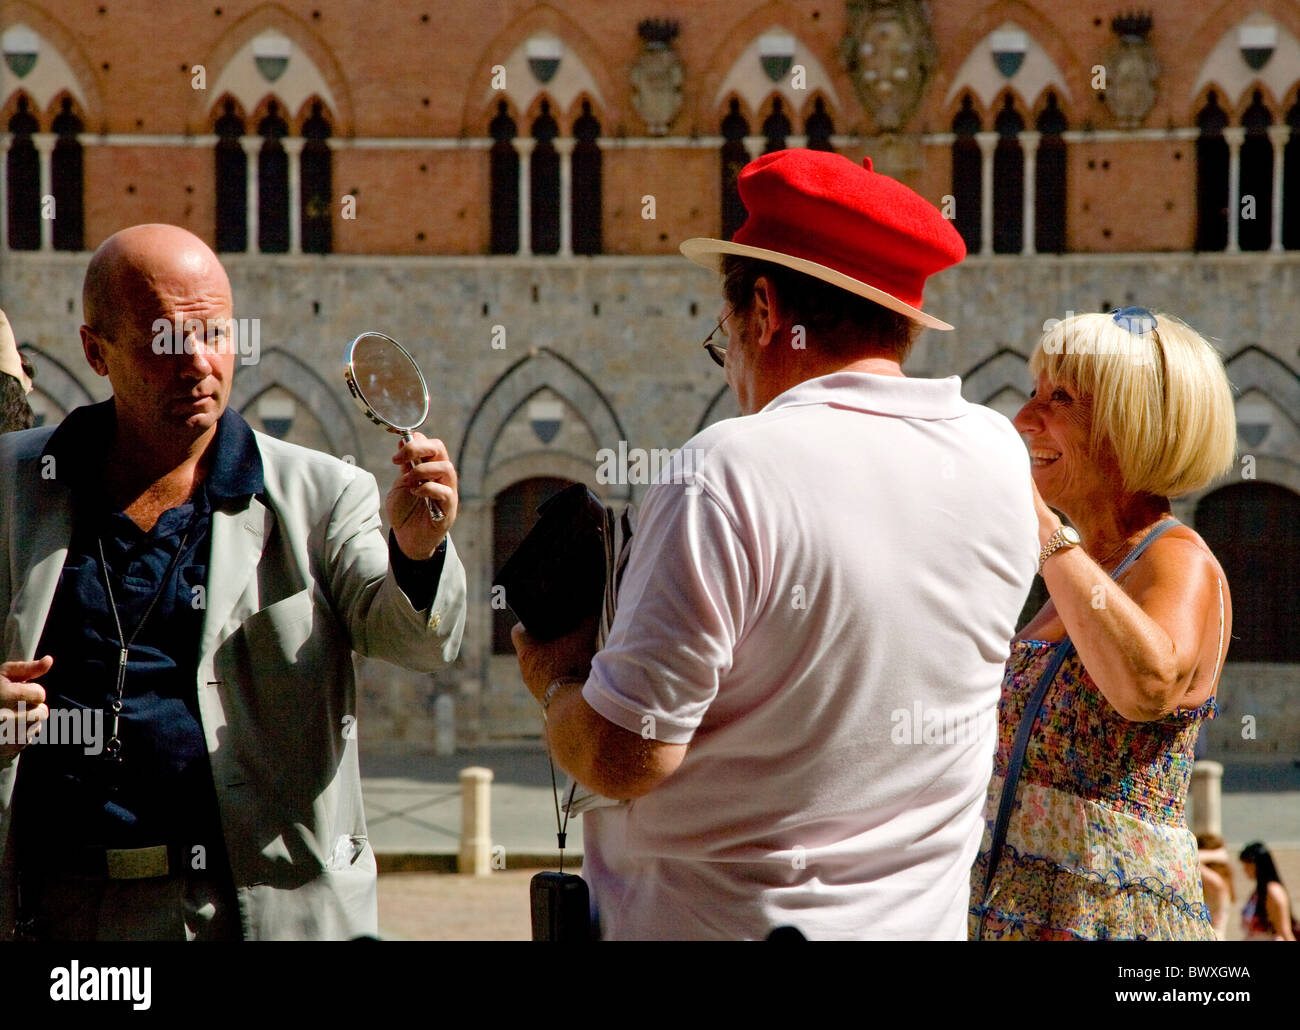 Street performer reveals his red beret plonked on an innocent tourist's hat in the Campo of Sienna Tuscany Italy - Stock Image